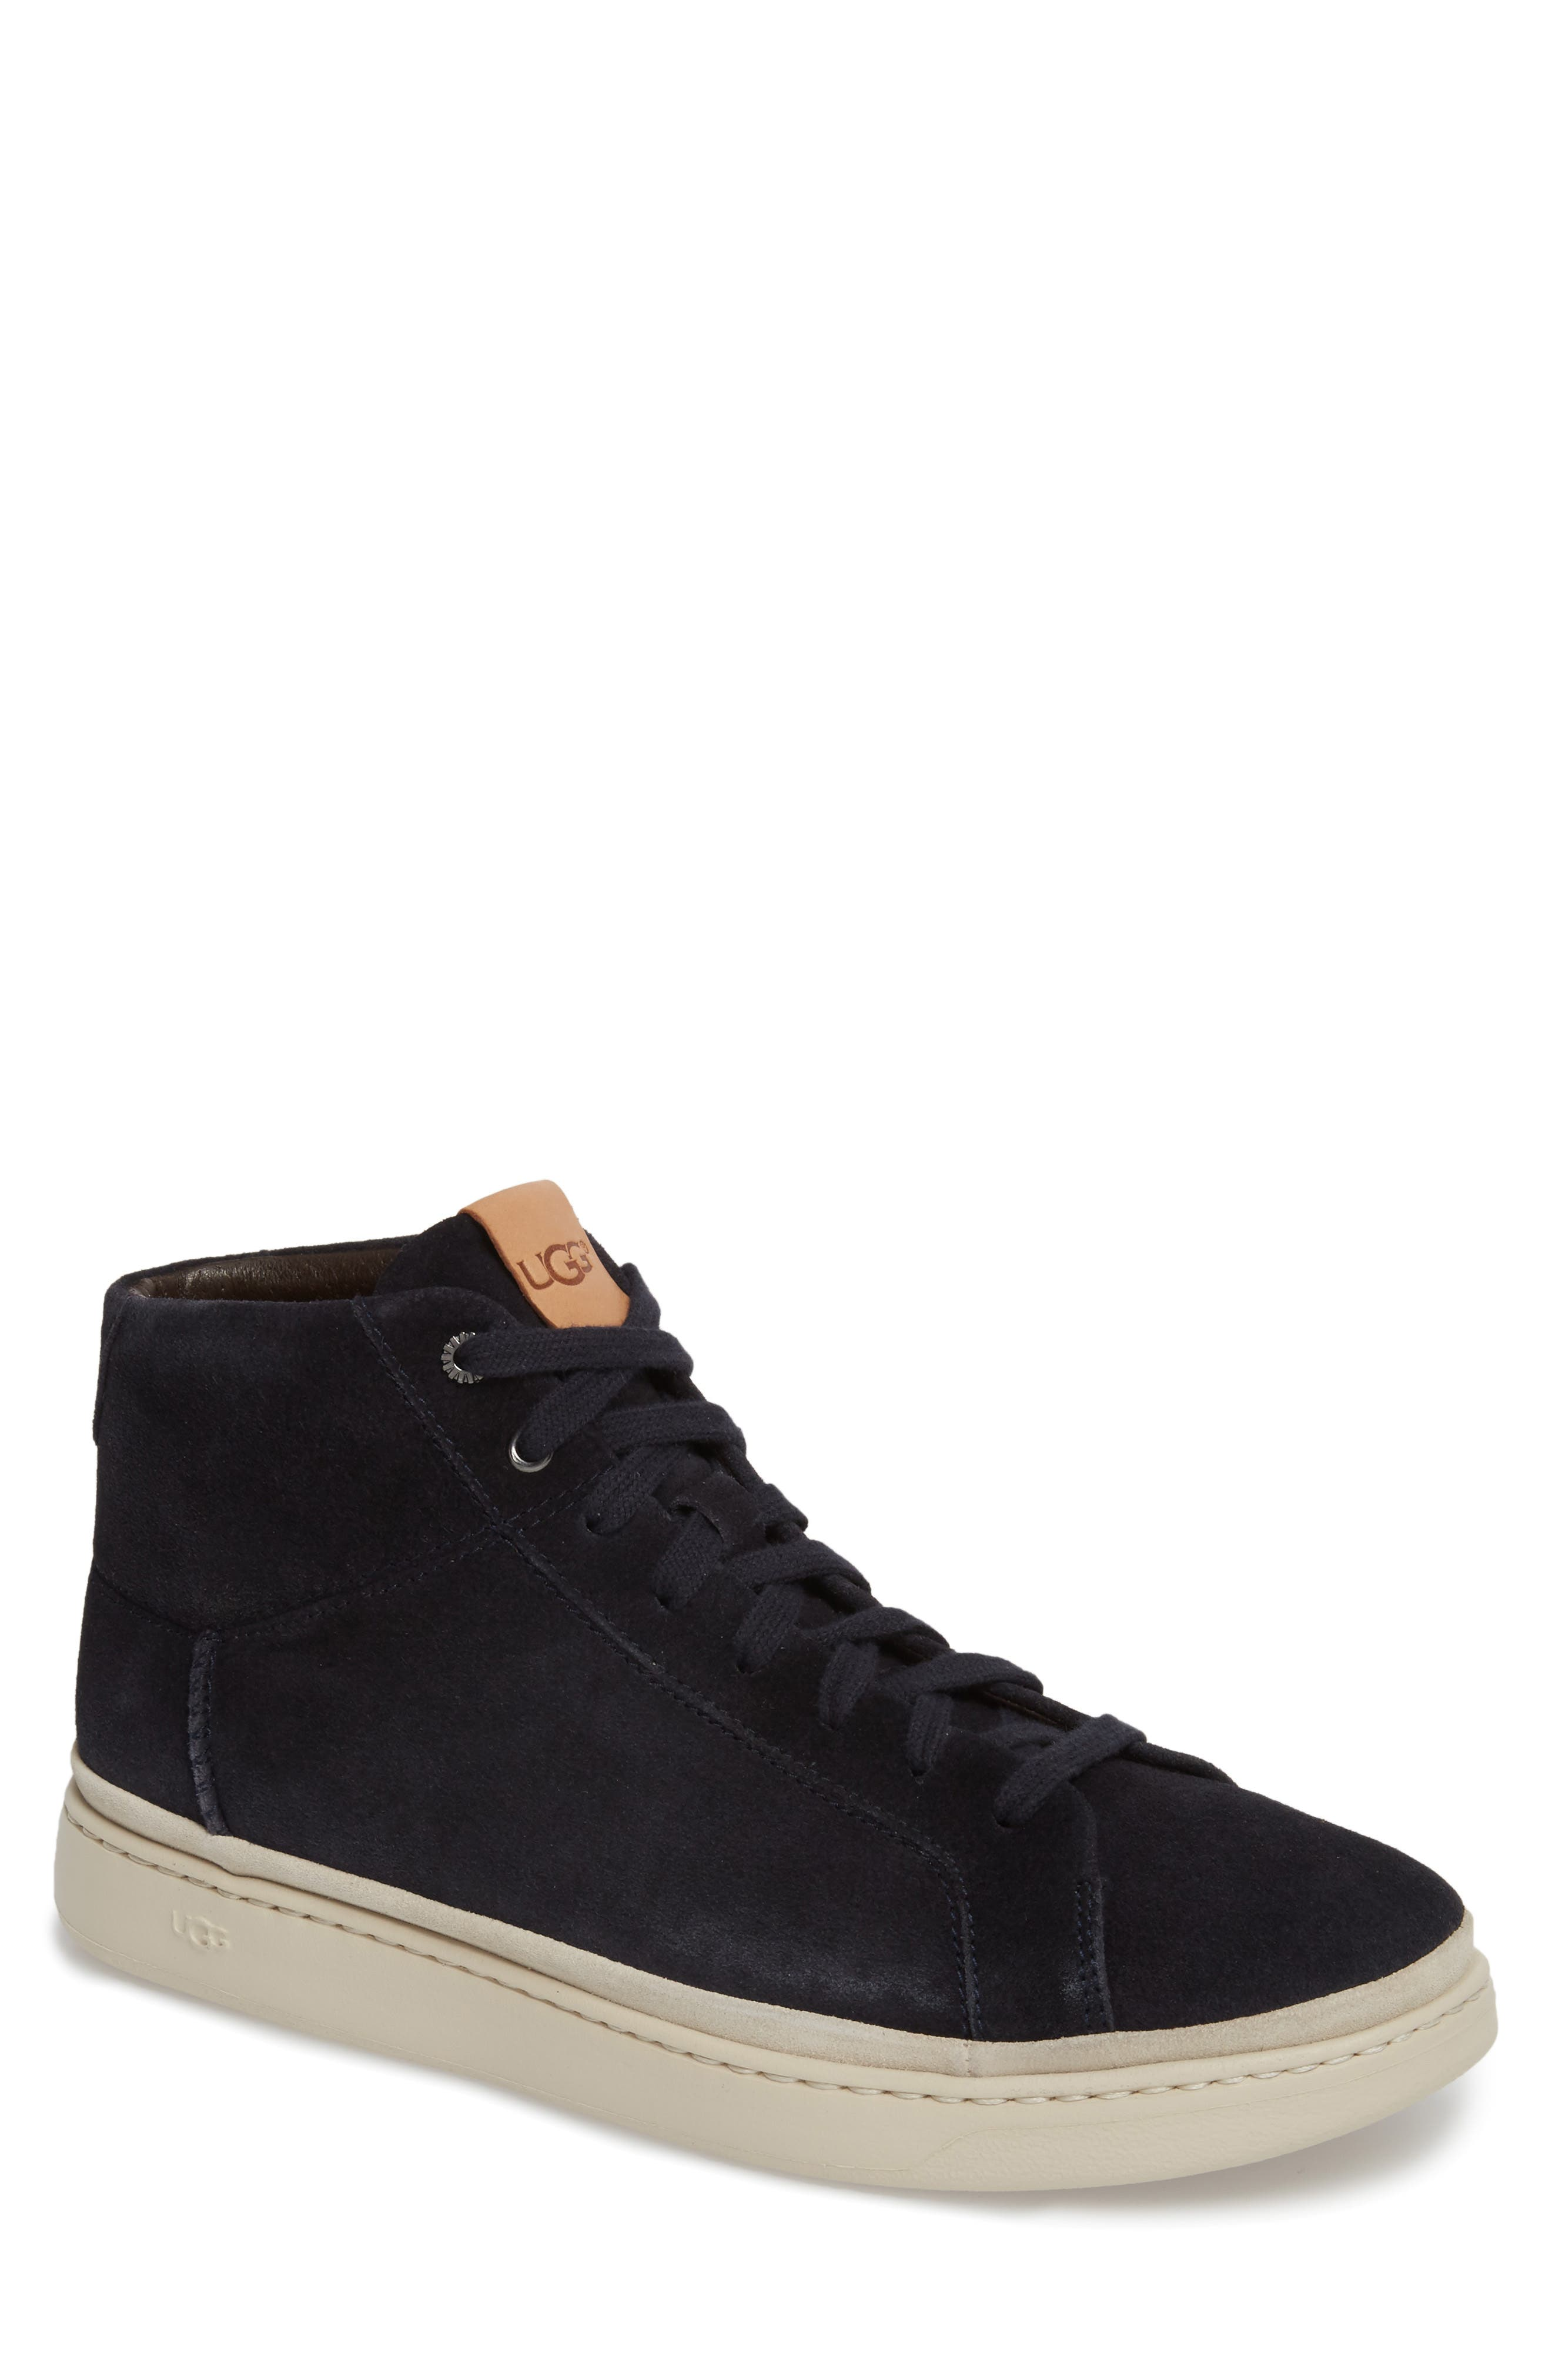 Cali High Top Sneaker,                         Main,                         color, NAVY LEATHER